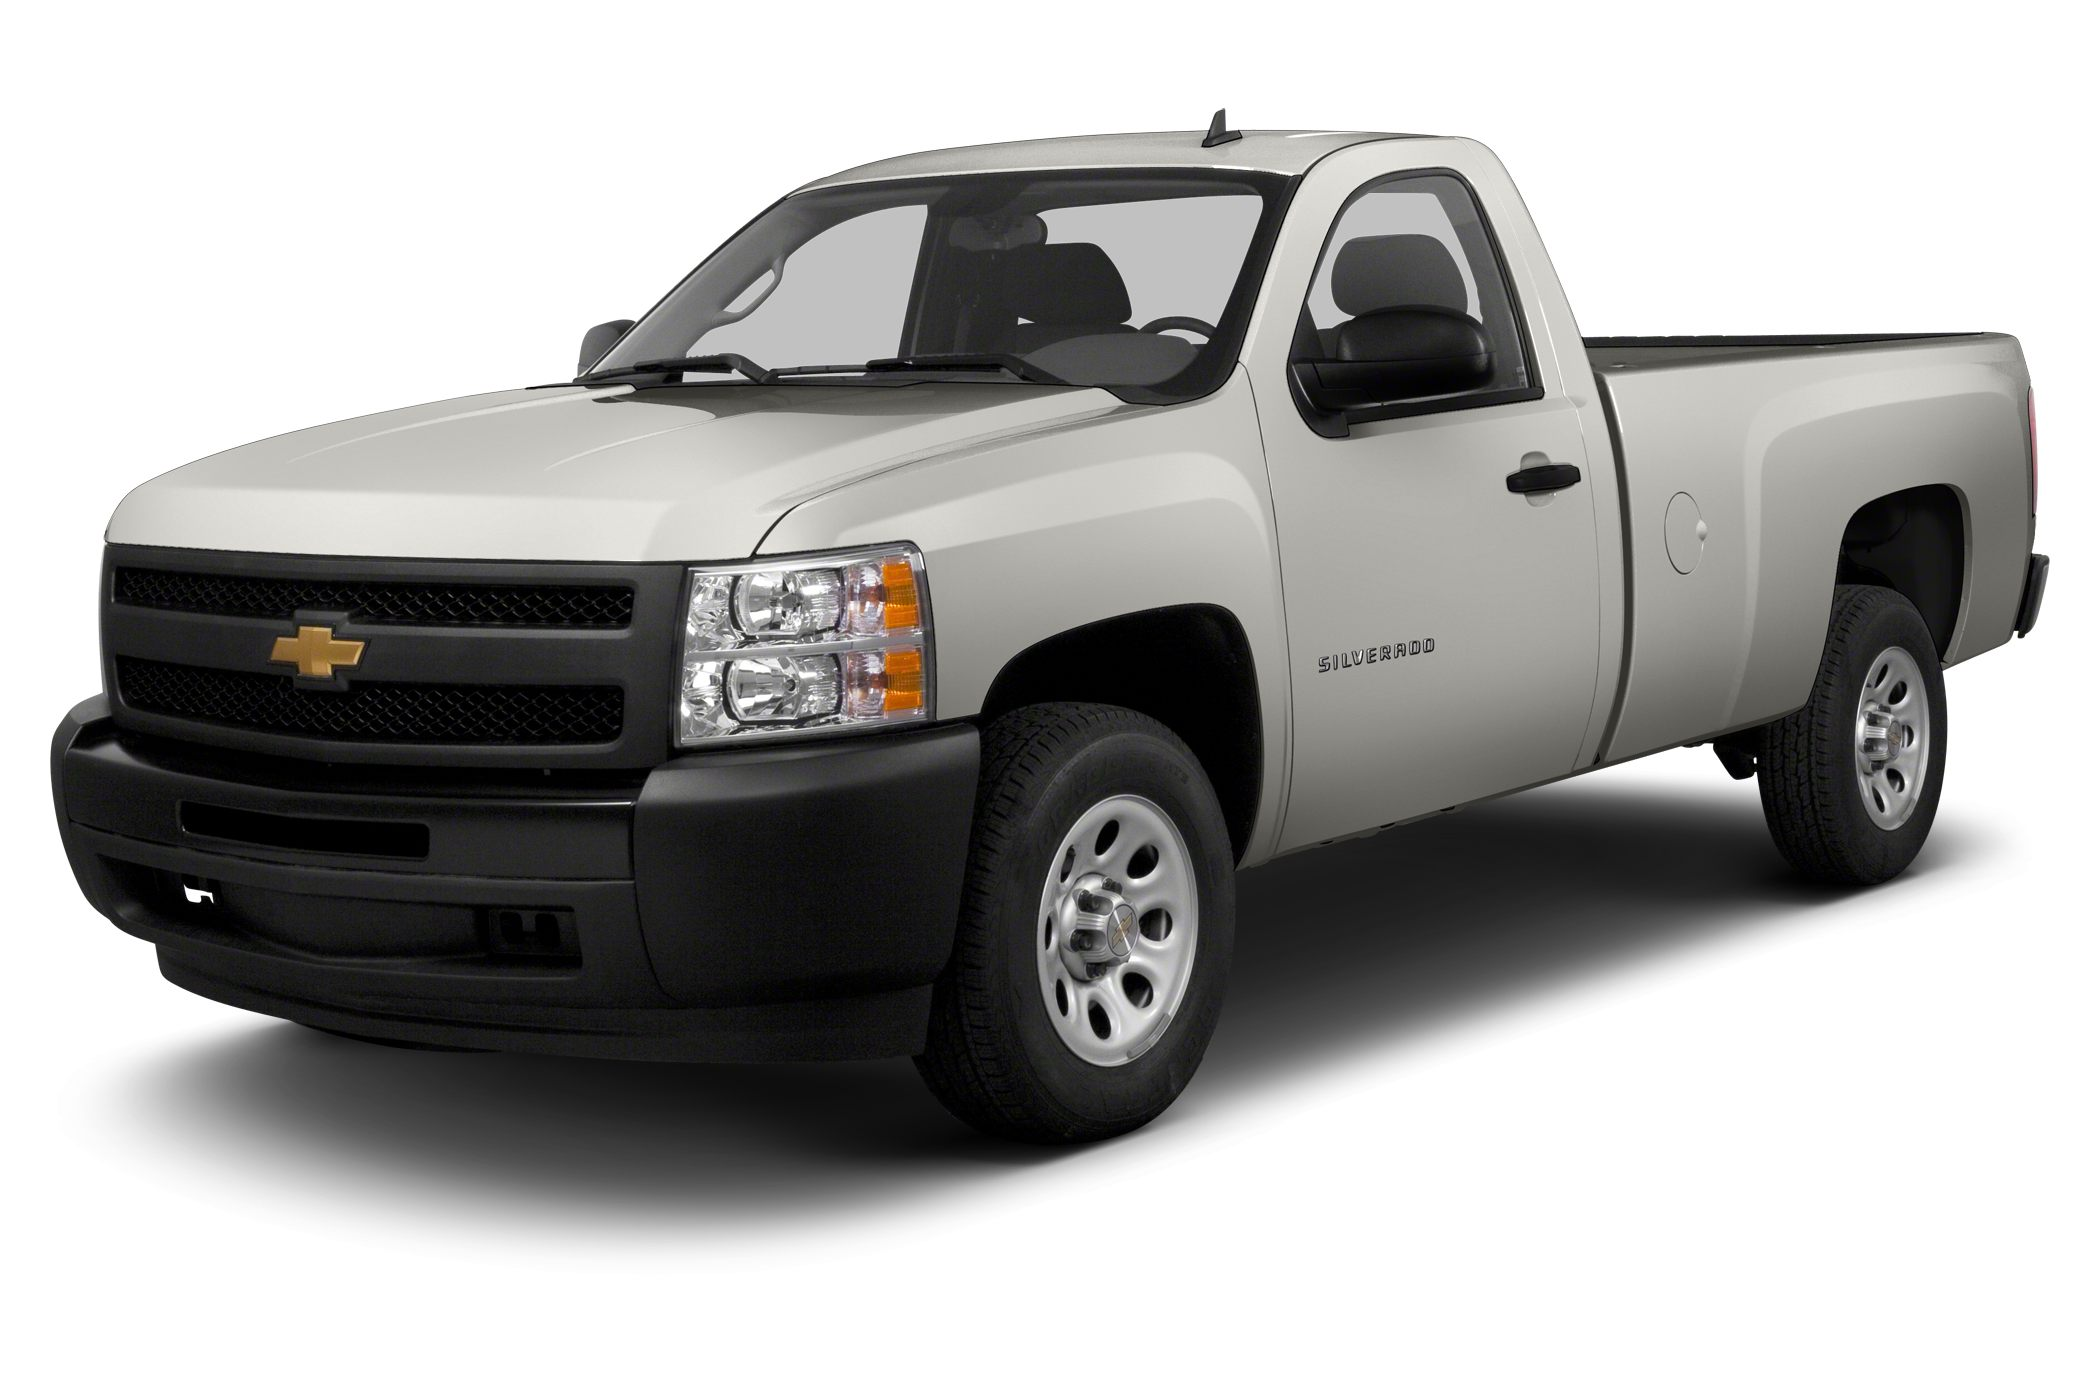 2013 chevrolet 1500 4x4 towing capacity autos post. Black Bedroom Furniture Sets. Home Design Ideas